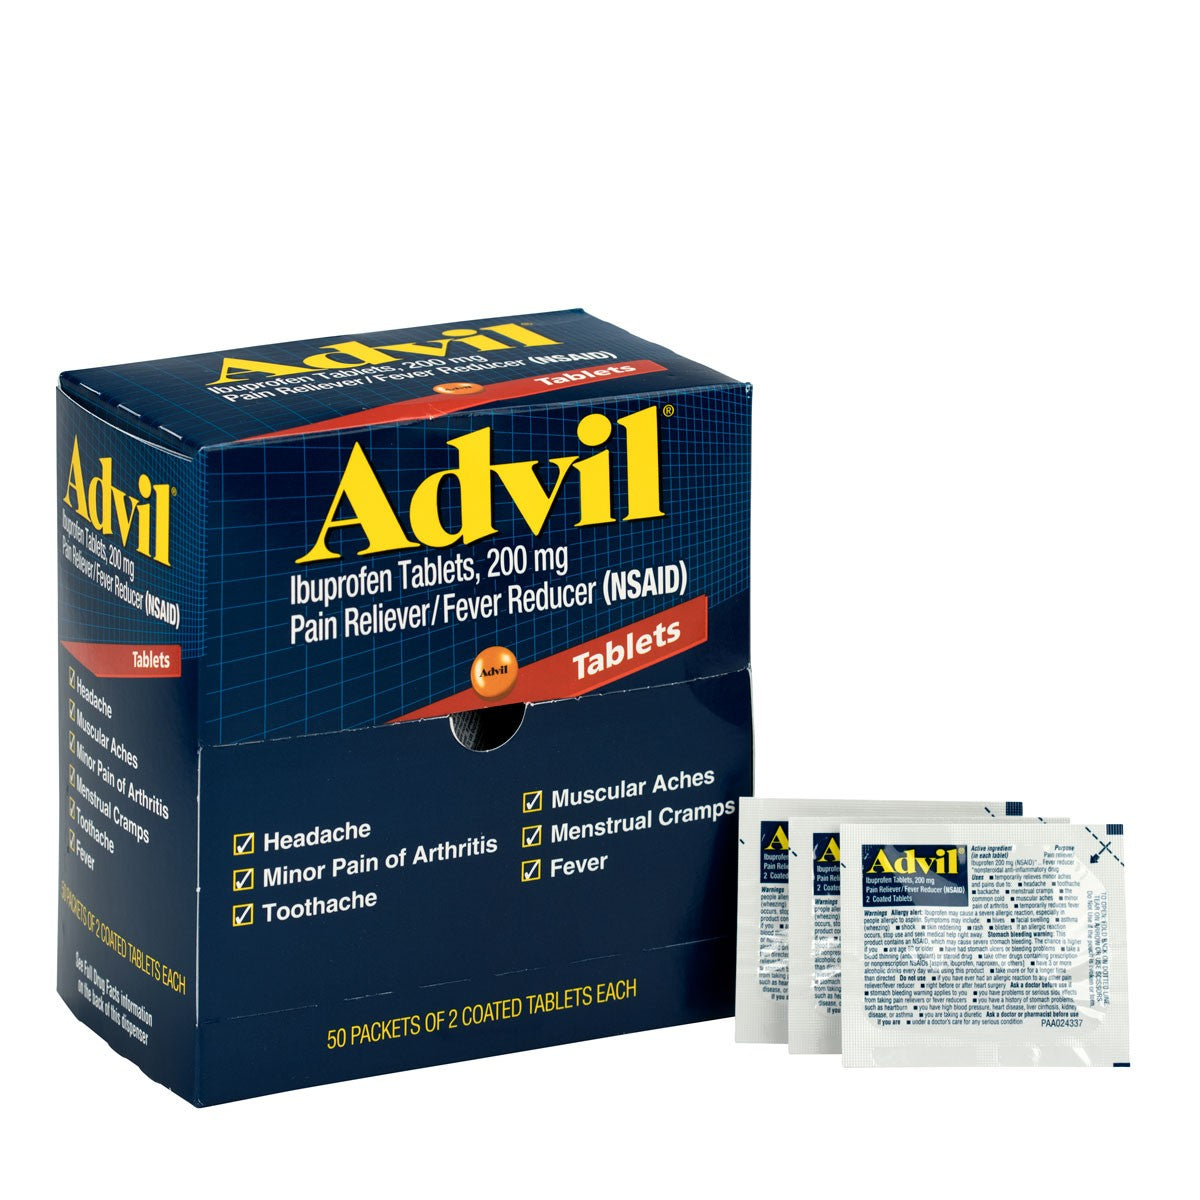 Advil Ibuprofen Medication, 50 Doses Of Two Tablets, 200 Mg - BS-FAK-15000-1-FM